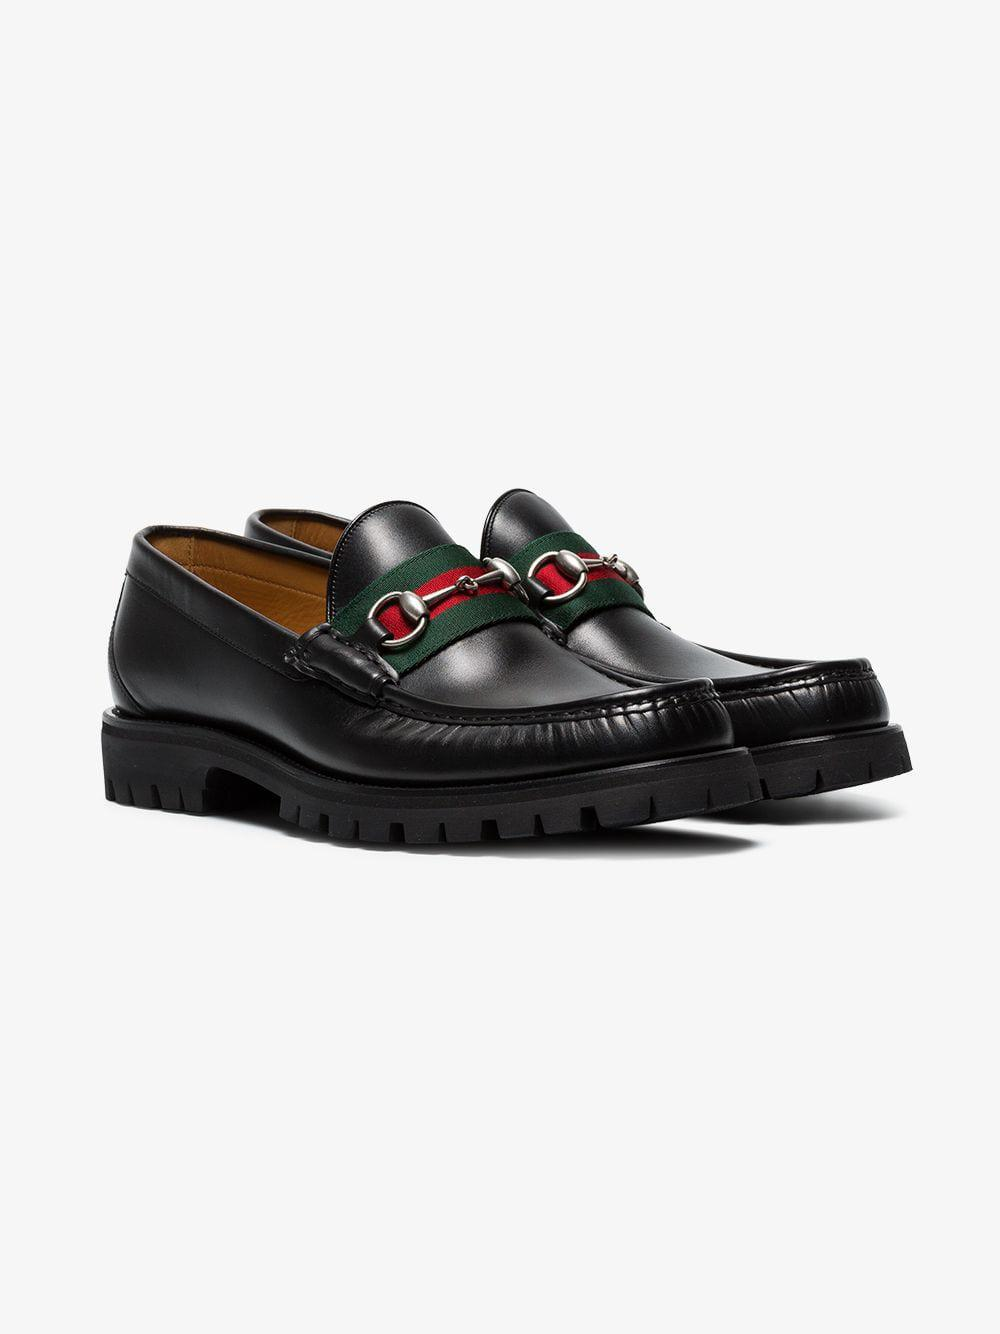 3da8861eb71 Lyst - Gucci Leather Web Horsebit Loafers in Black for Men - Save 2%